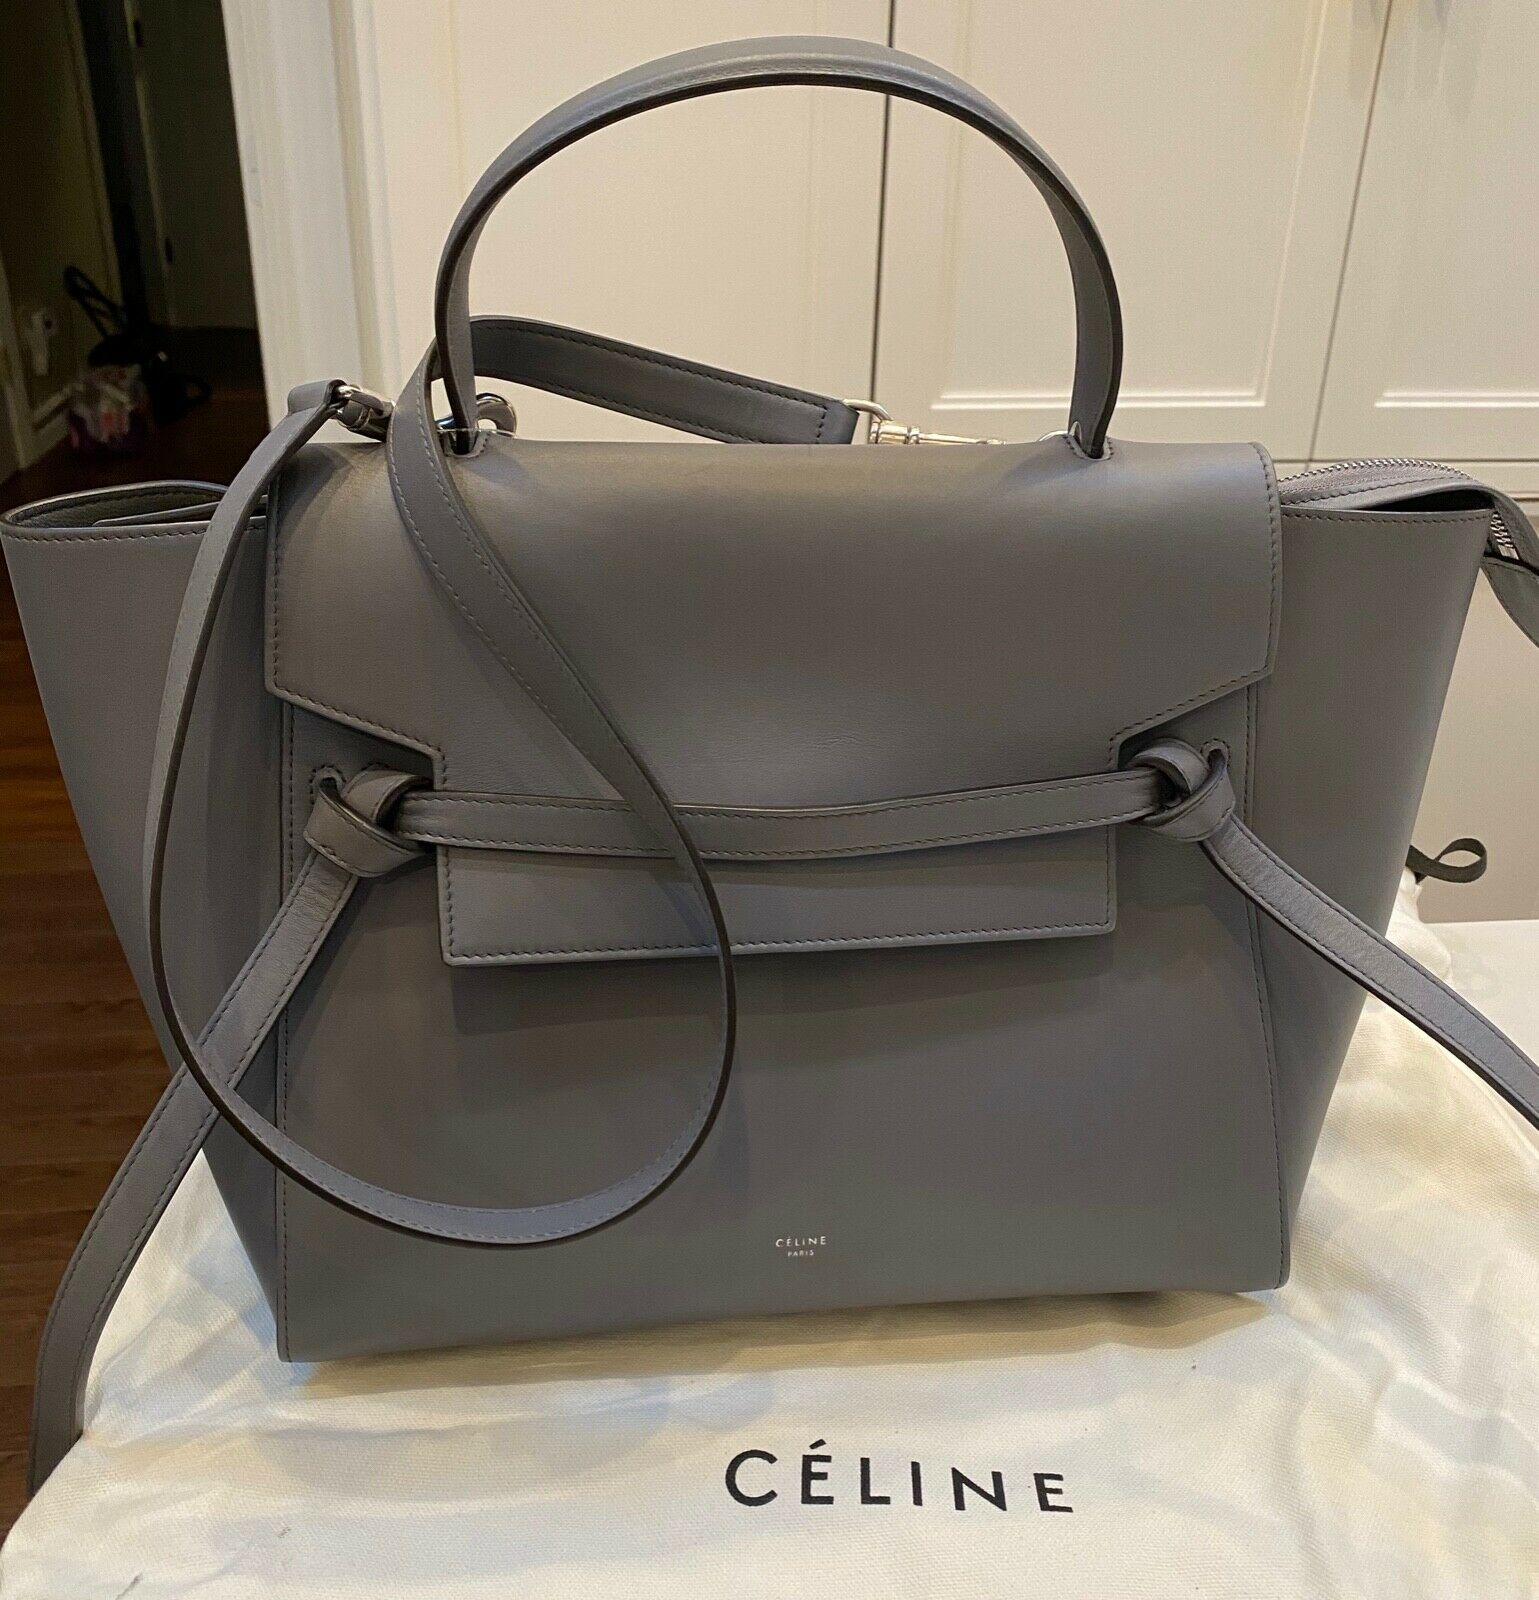 Celine Authentic Mini Belt Bag In Light Taupe Grained Calfskin For Sale Online Ebay